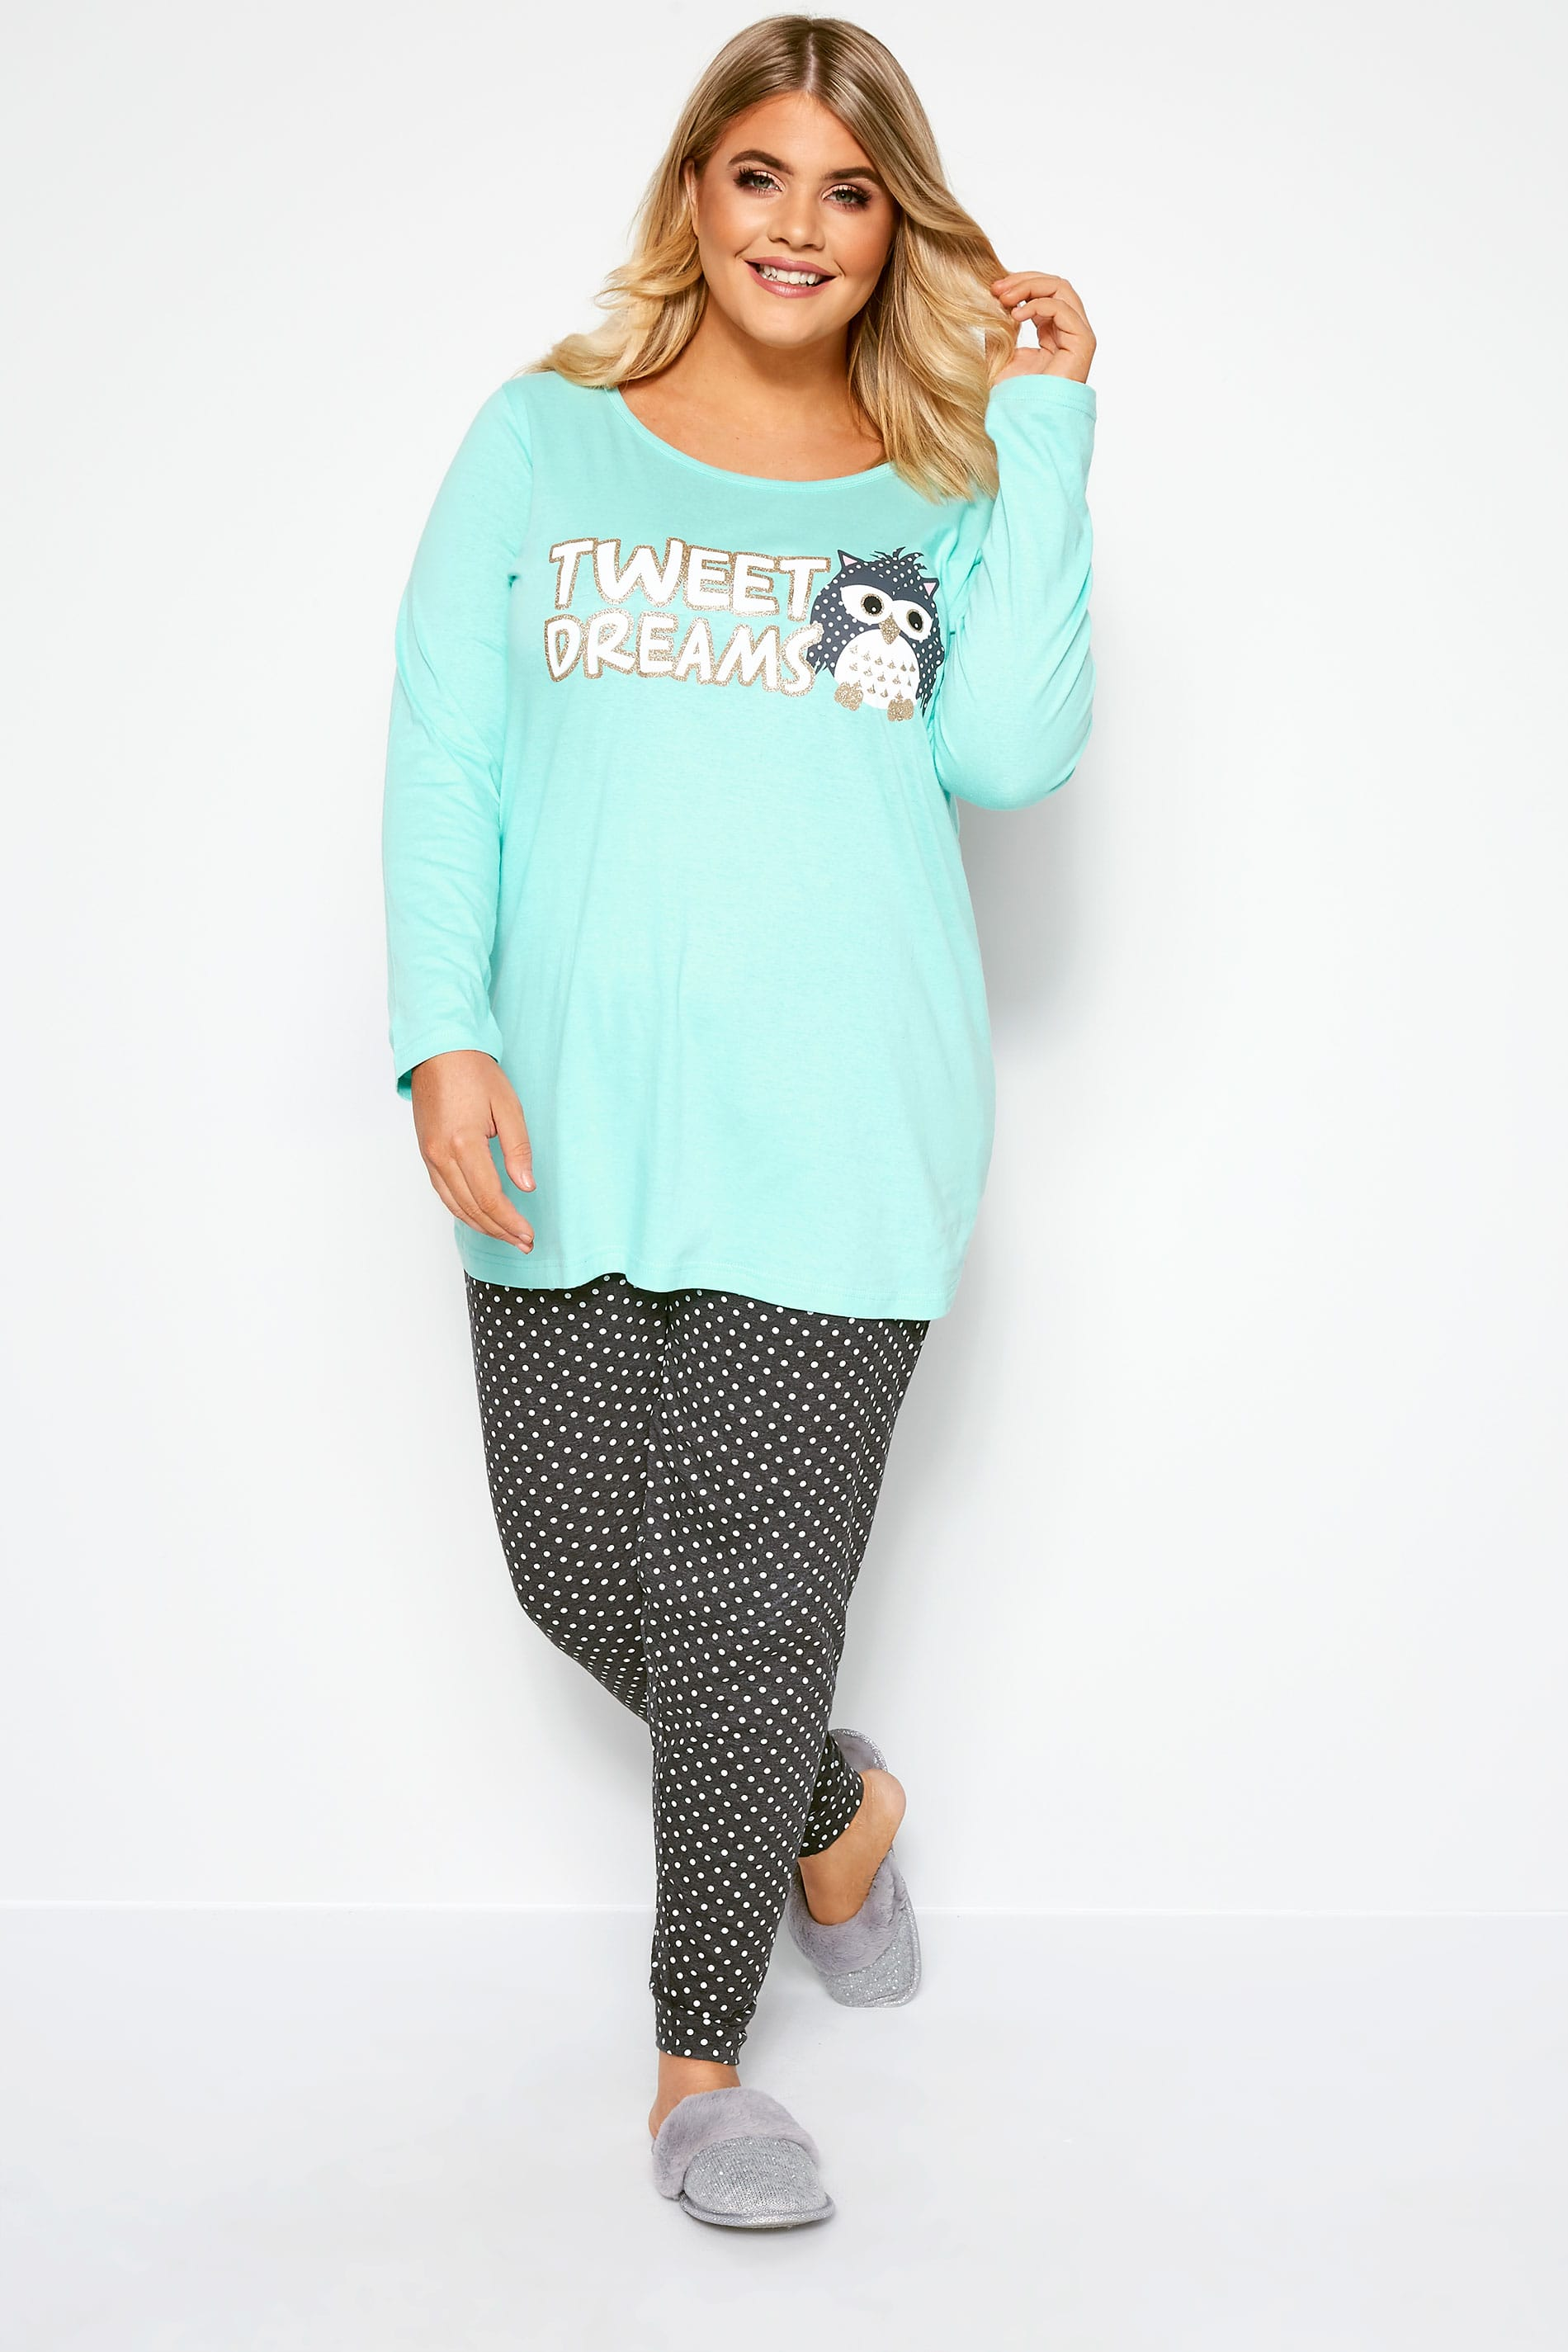 Grey & Blue Glitter Tweet Dreams Slogan Pyjama Set